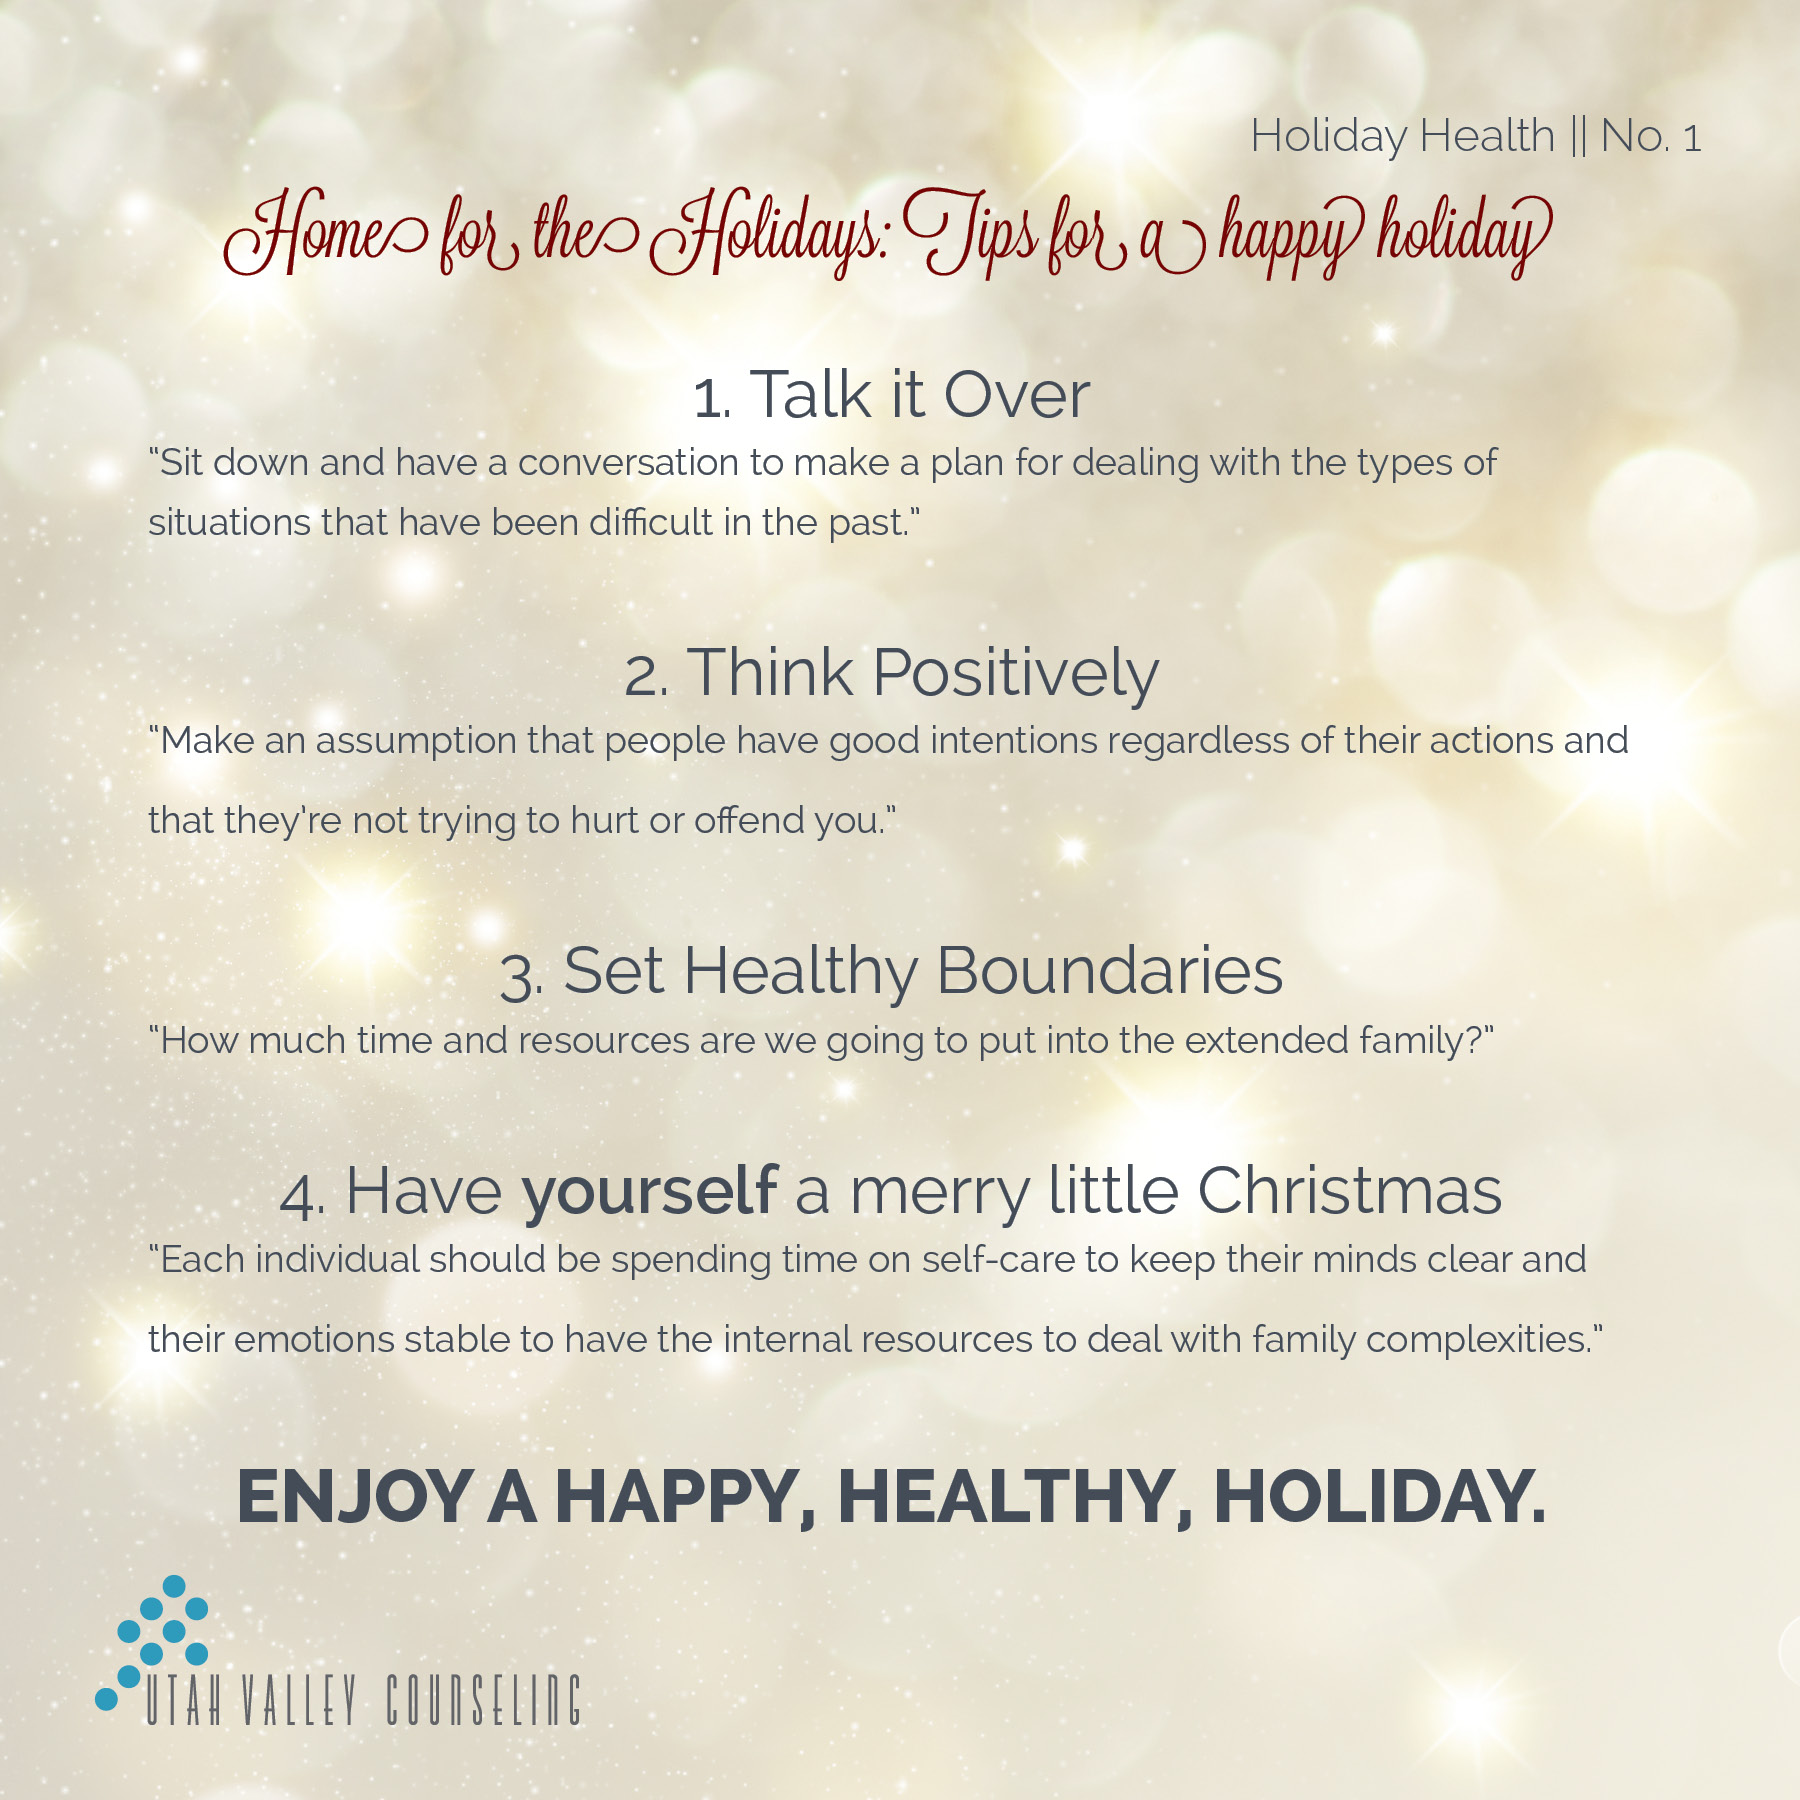 Holiday Tips for Family Events - Happy Holidays with Family